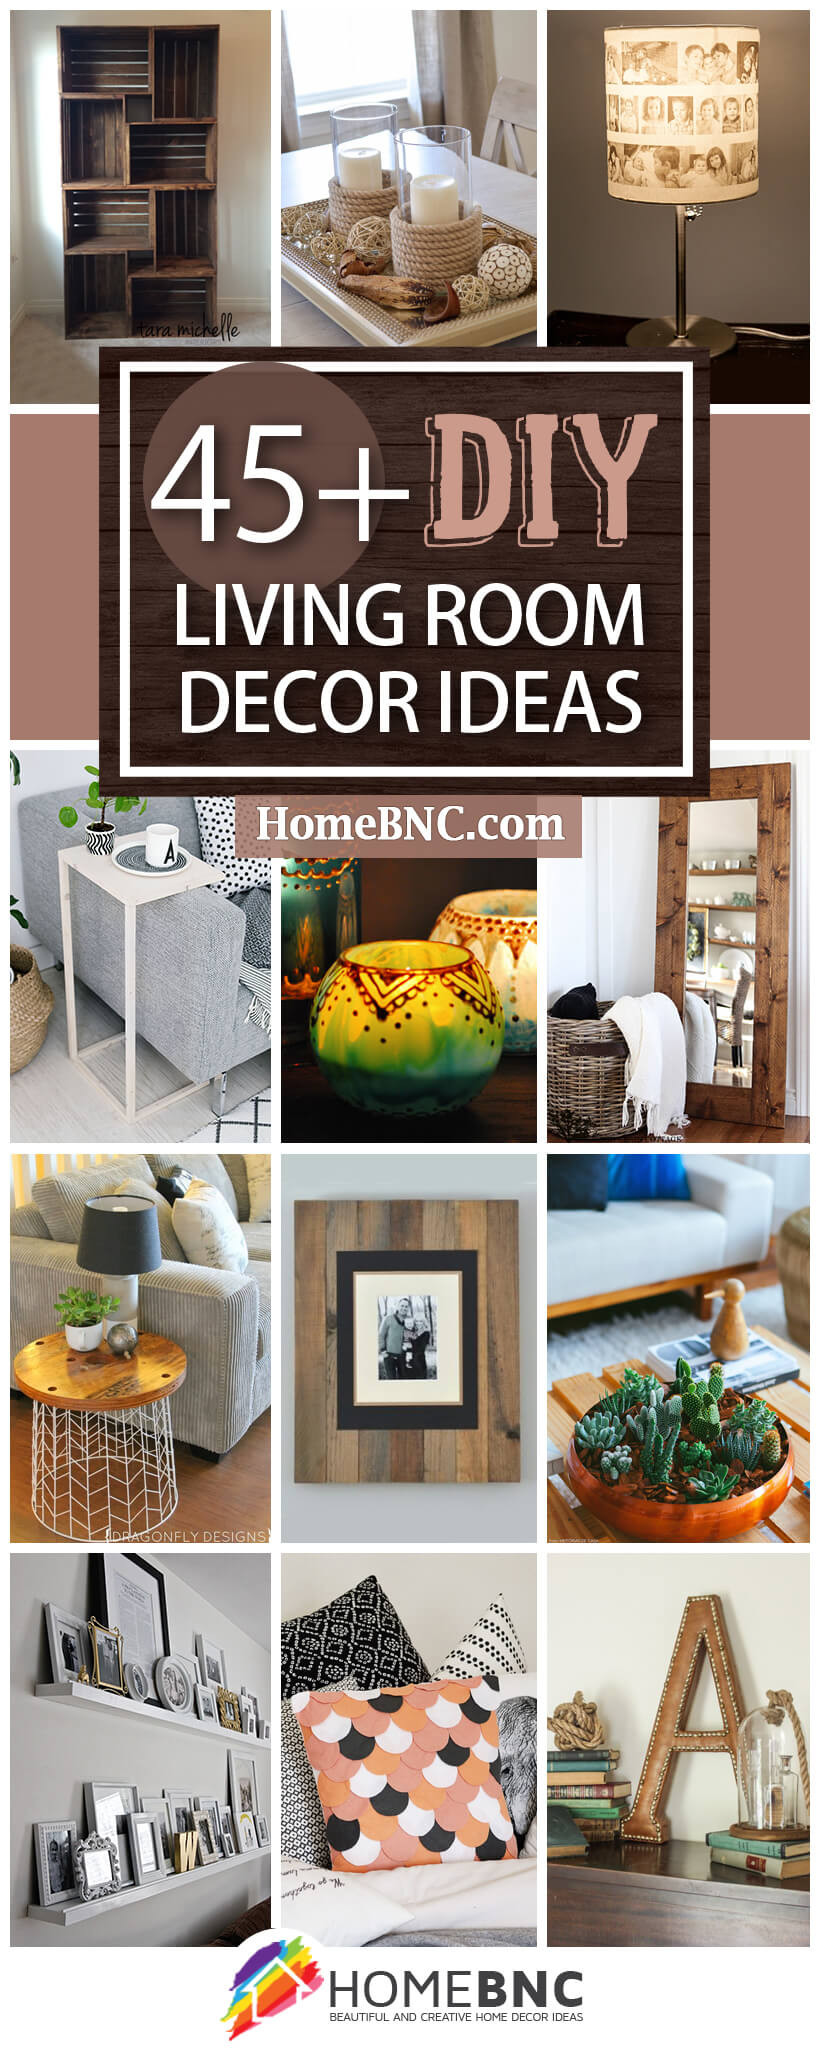 Best ideas about Living Room Decorations DIY . Save or Pin 45 Best DIY Living Room Decorating Ideas and Designs for 2019 Now.